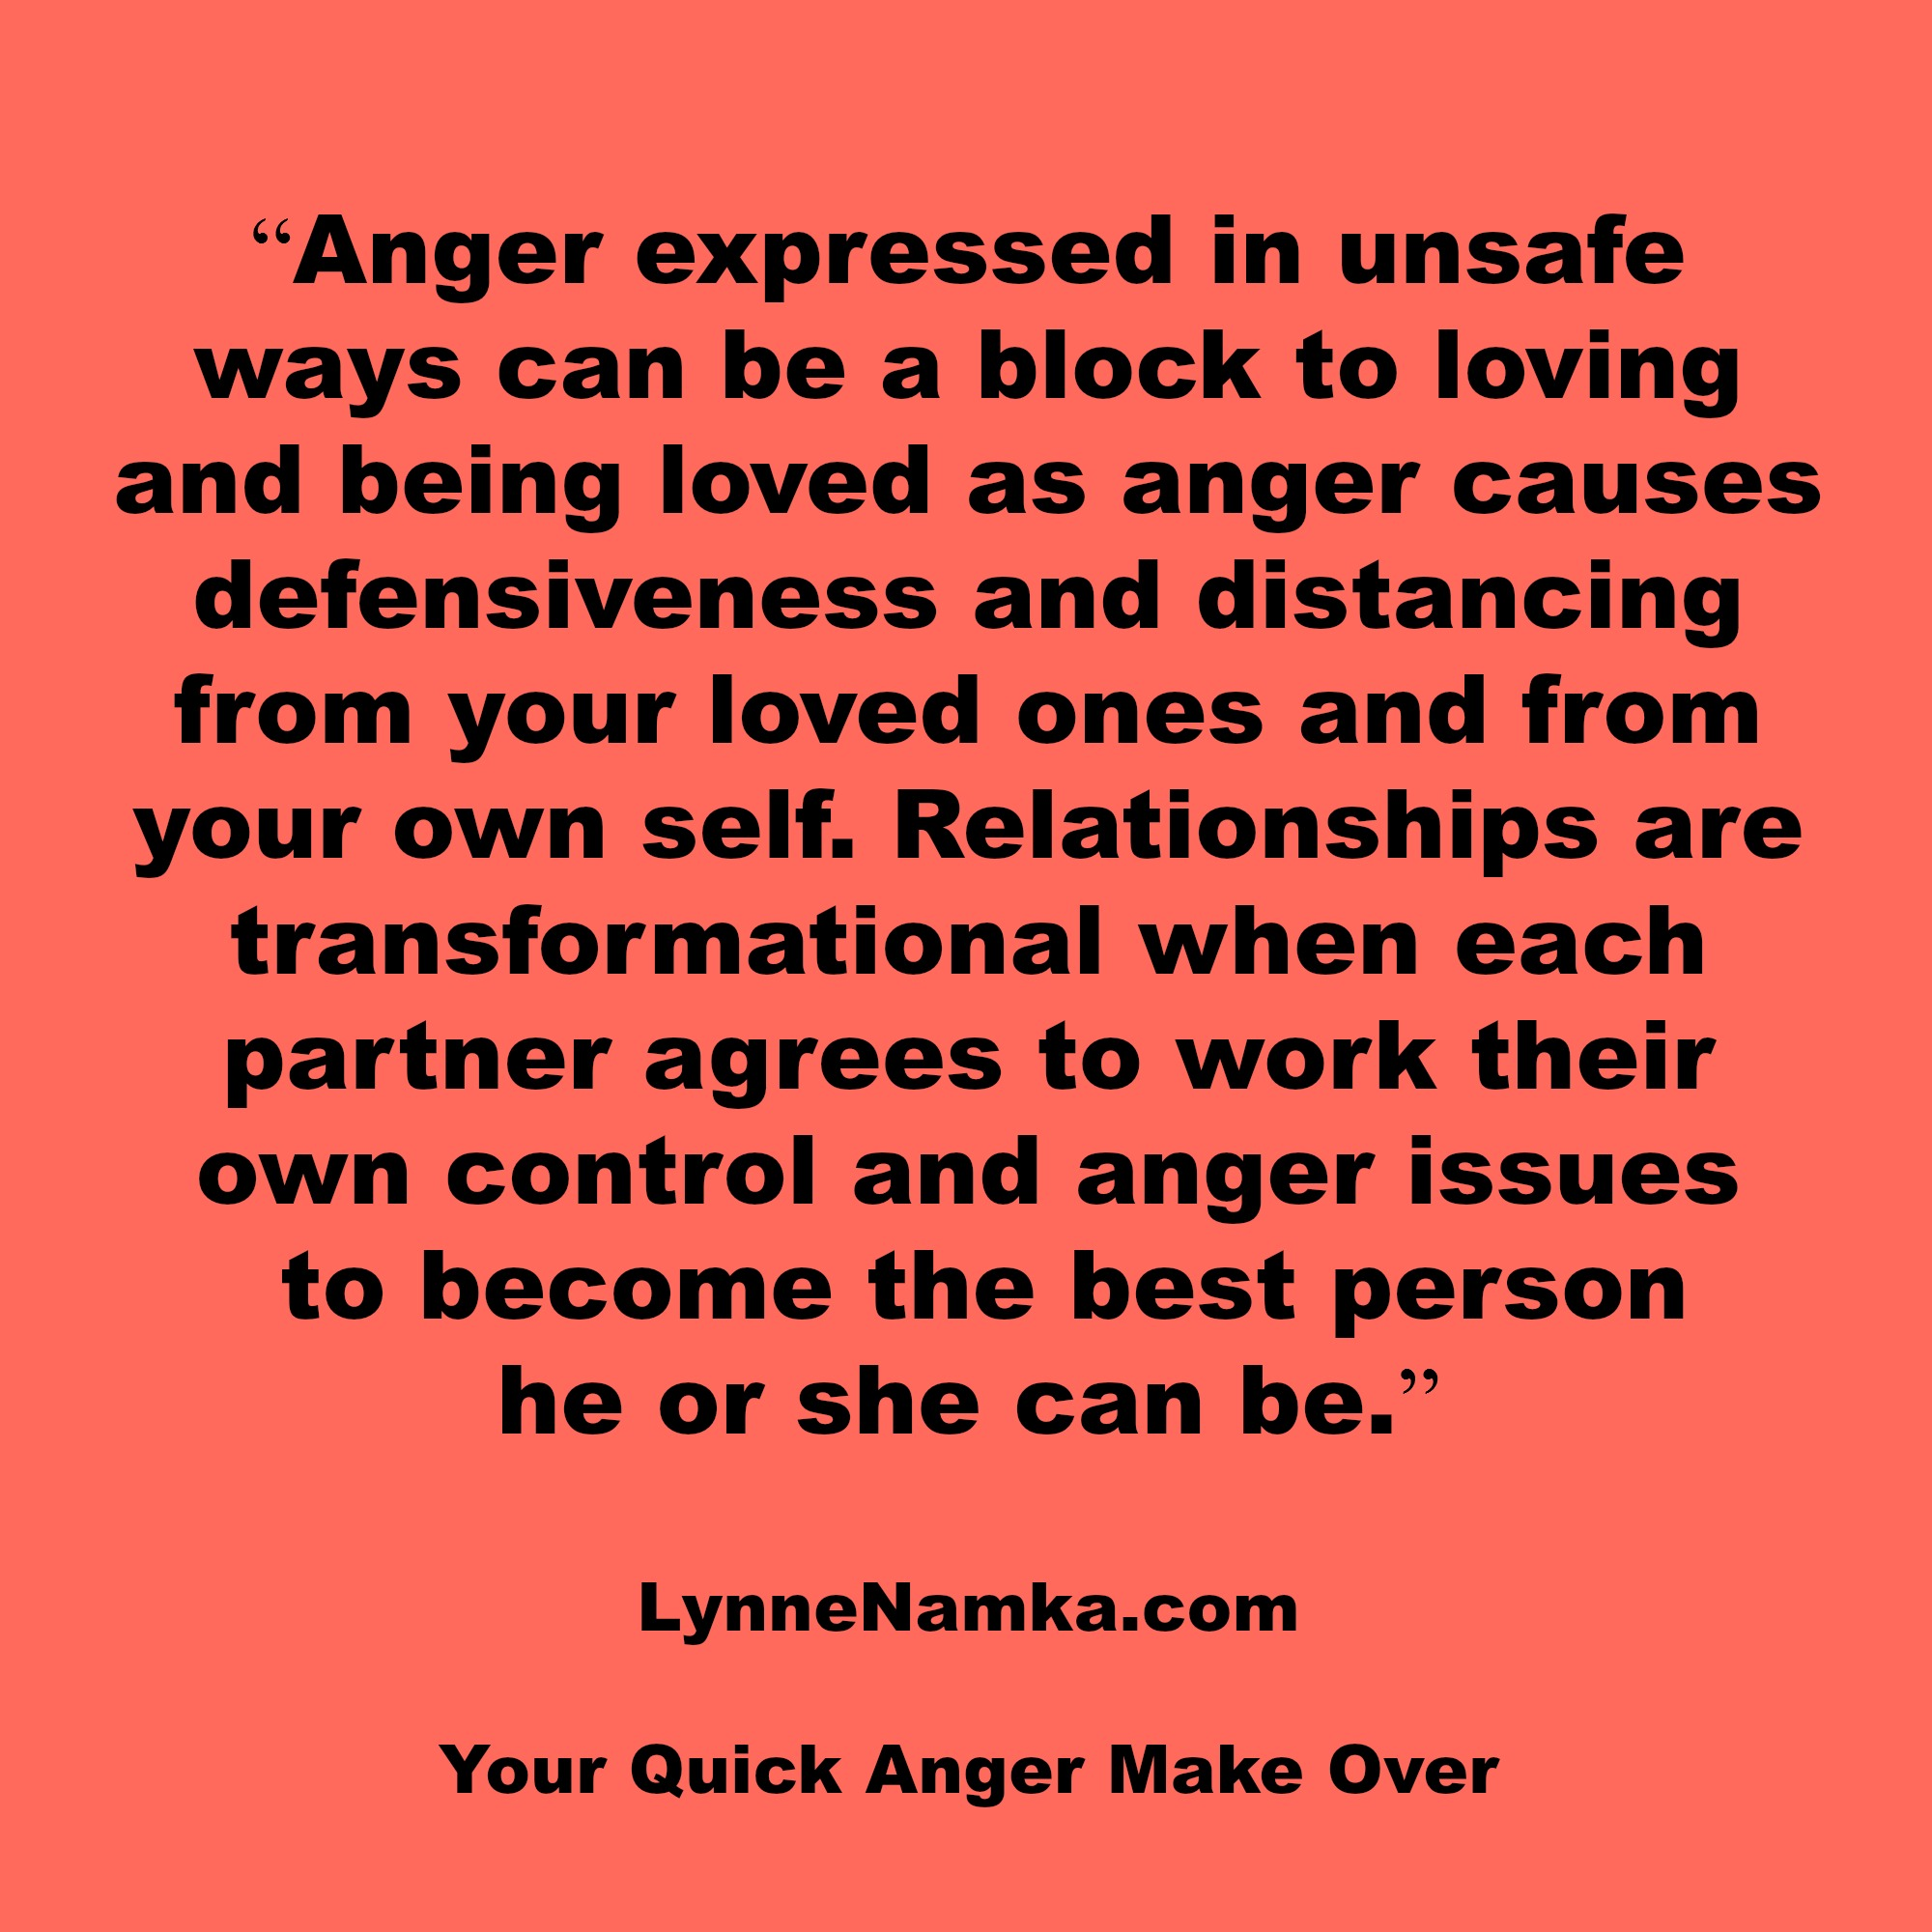 anger and relationships